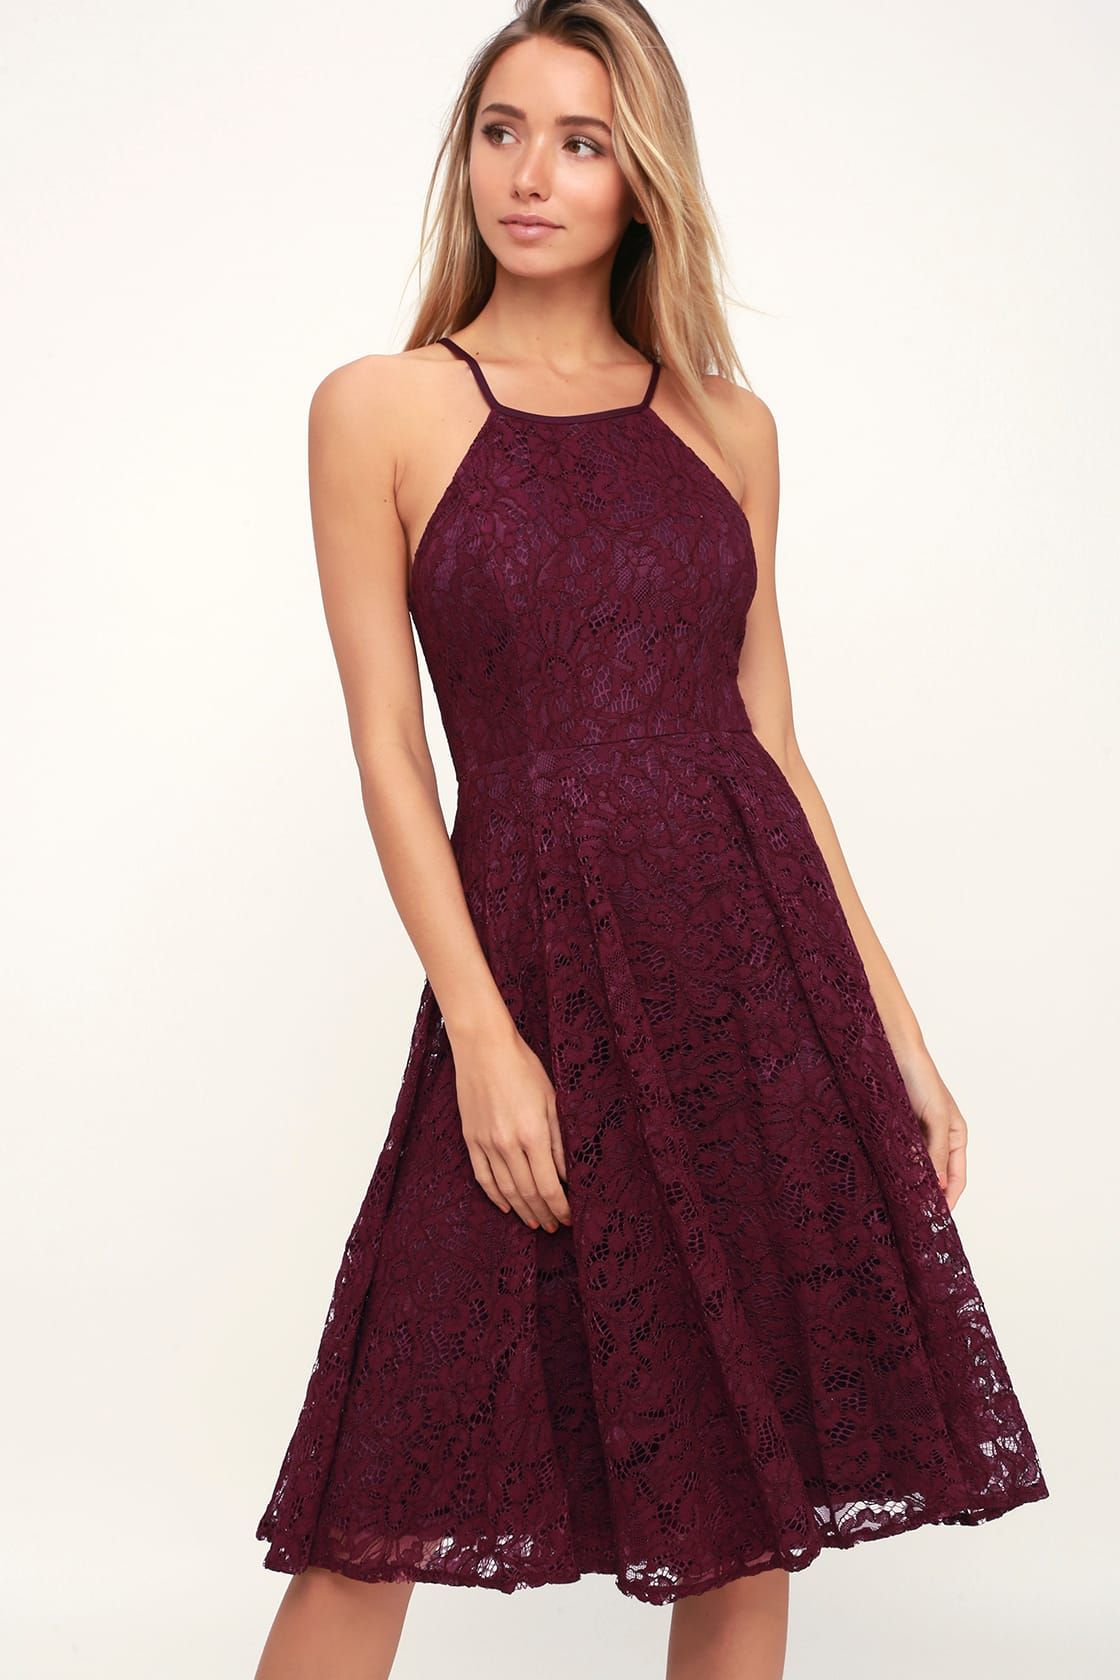 7a4c24bf8c3022 Endlessly Infatuated Plum Purple Lace Midi Dress in 2019 | For the ...